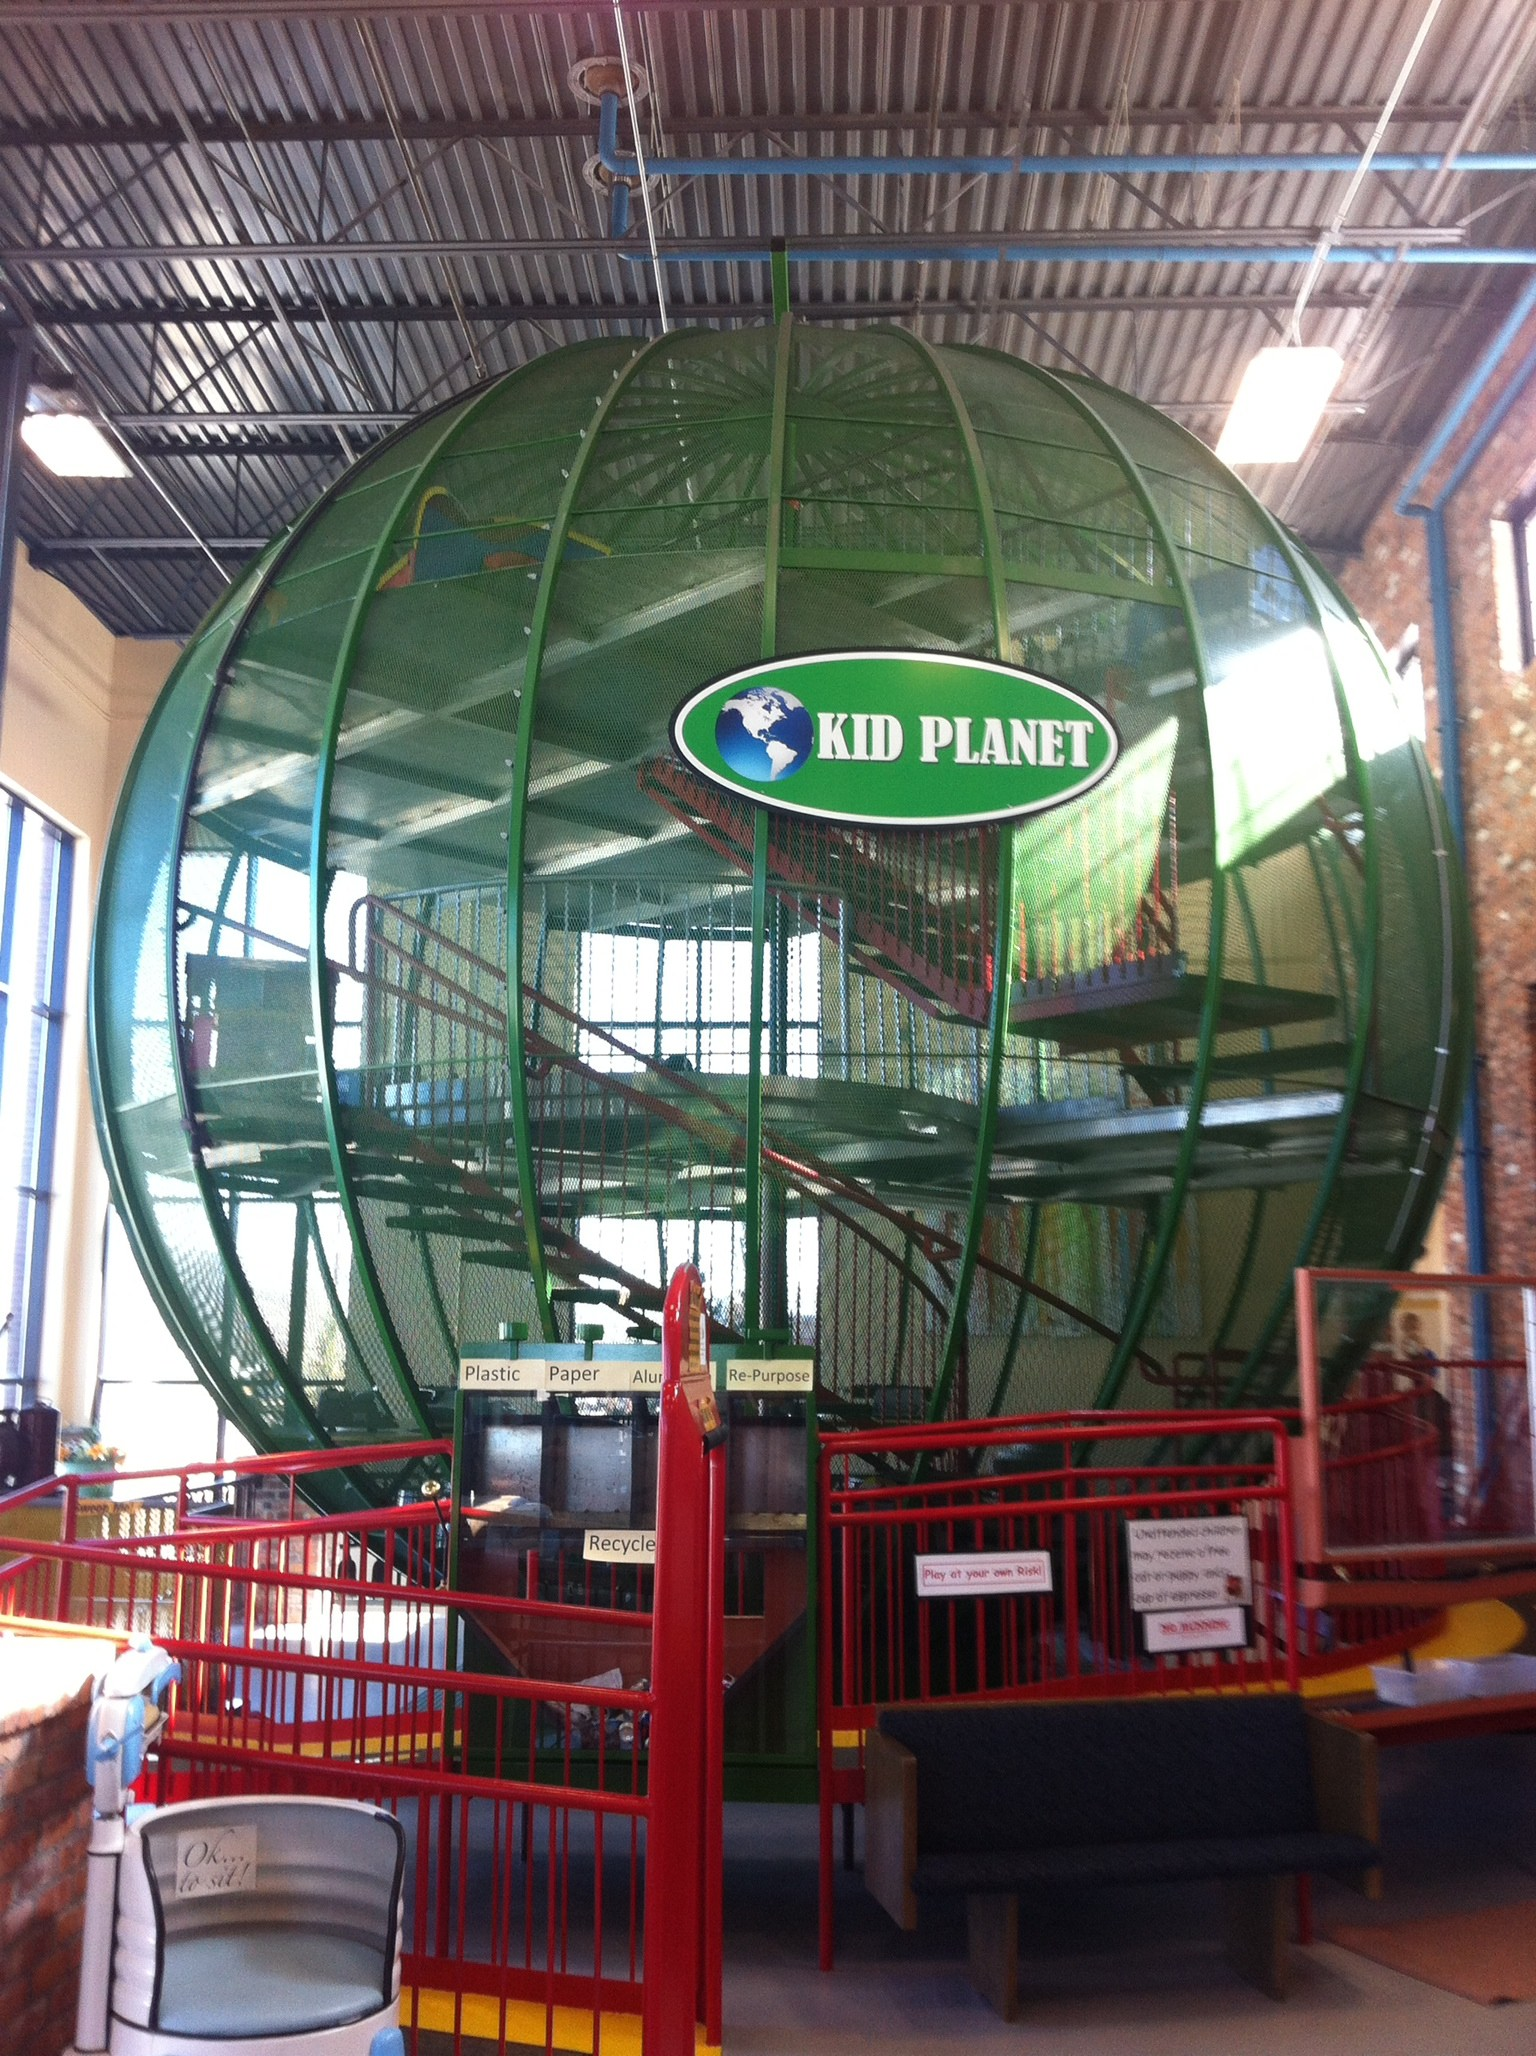 The Kid's Planet at the entrance to the museum allows children to run off their excess energy.